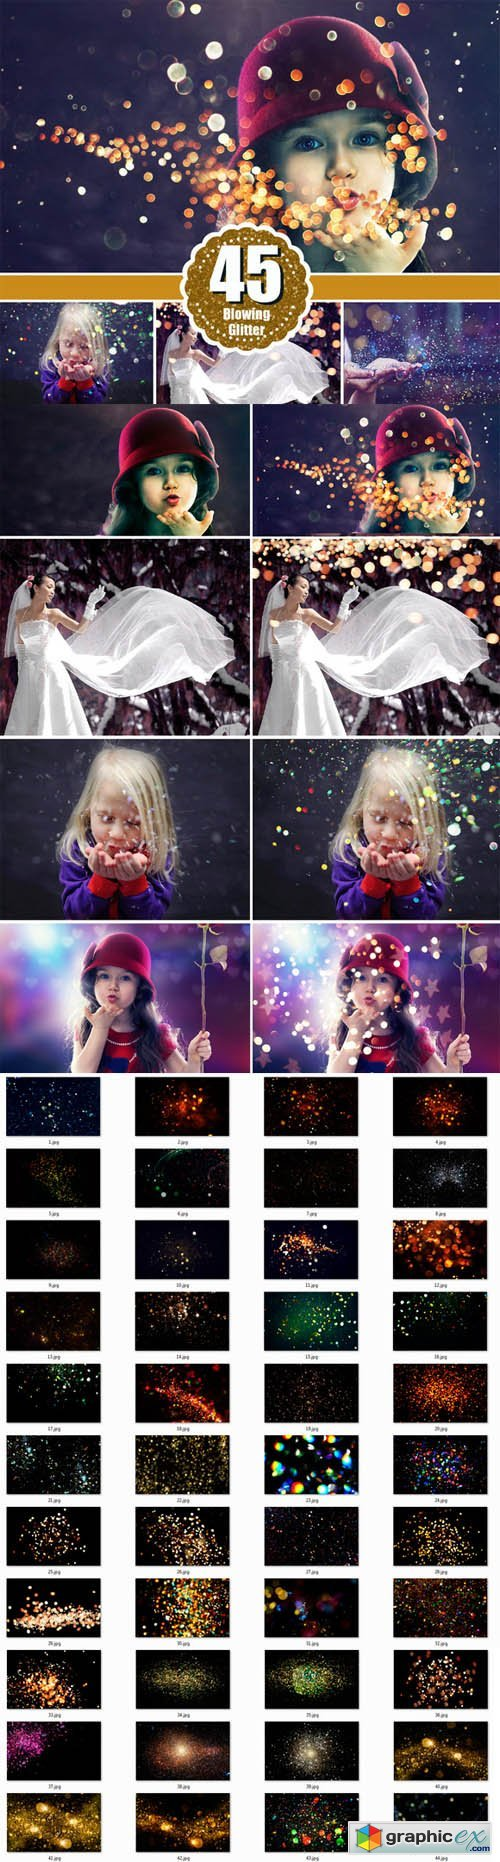 Blowing glitter photoshop overlays